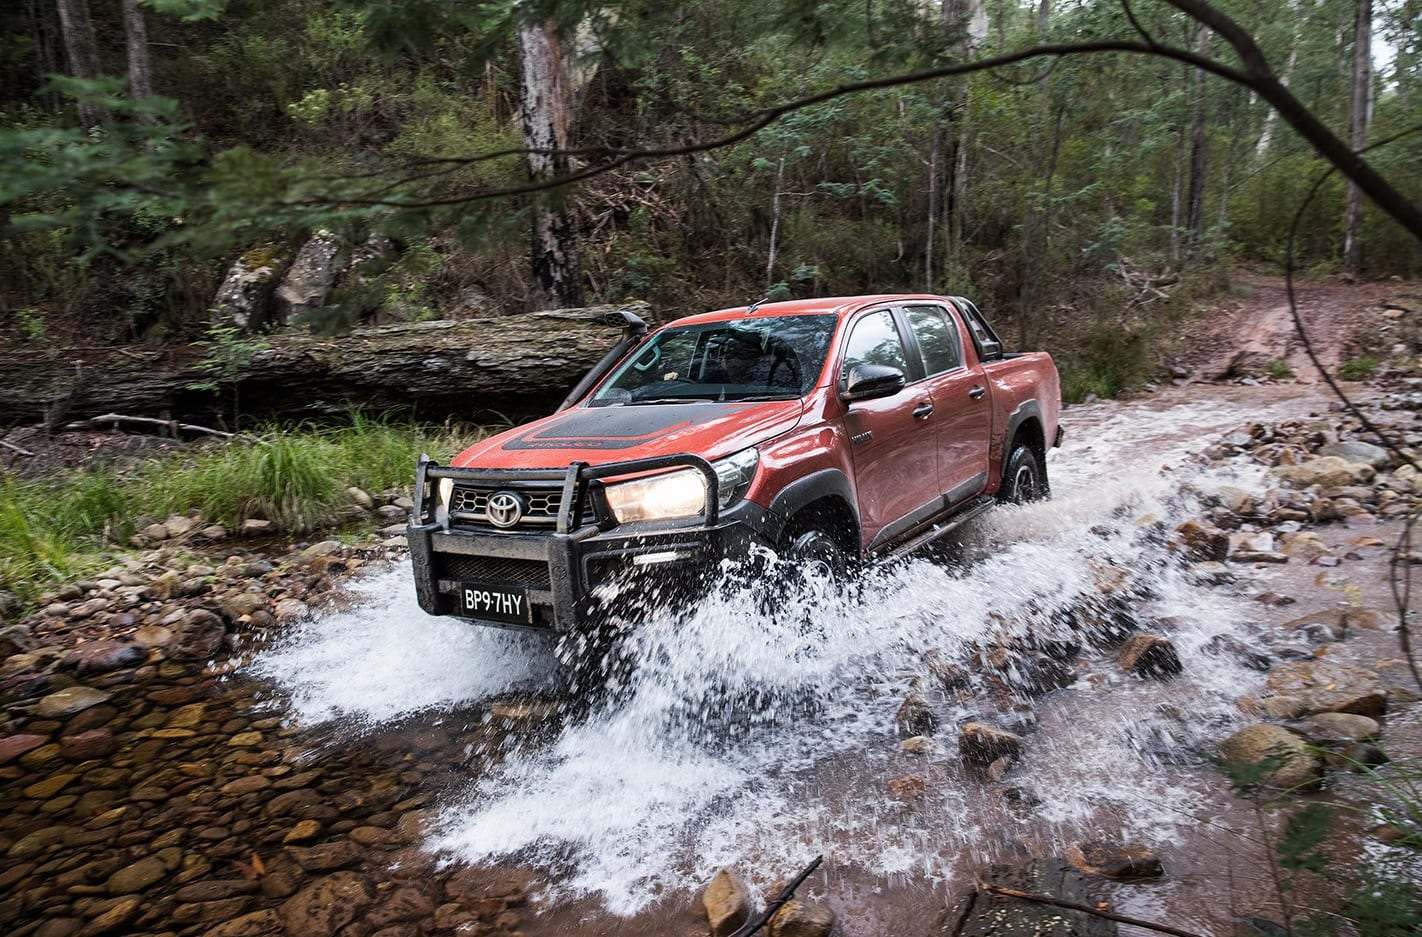 Best 4x4 utes you can buy in Australia